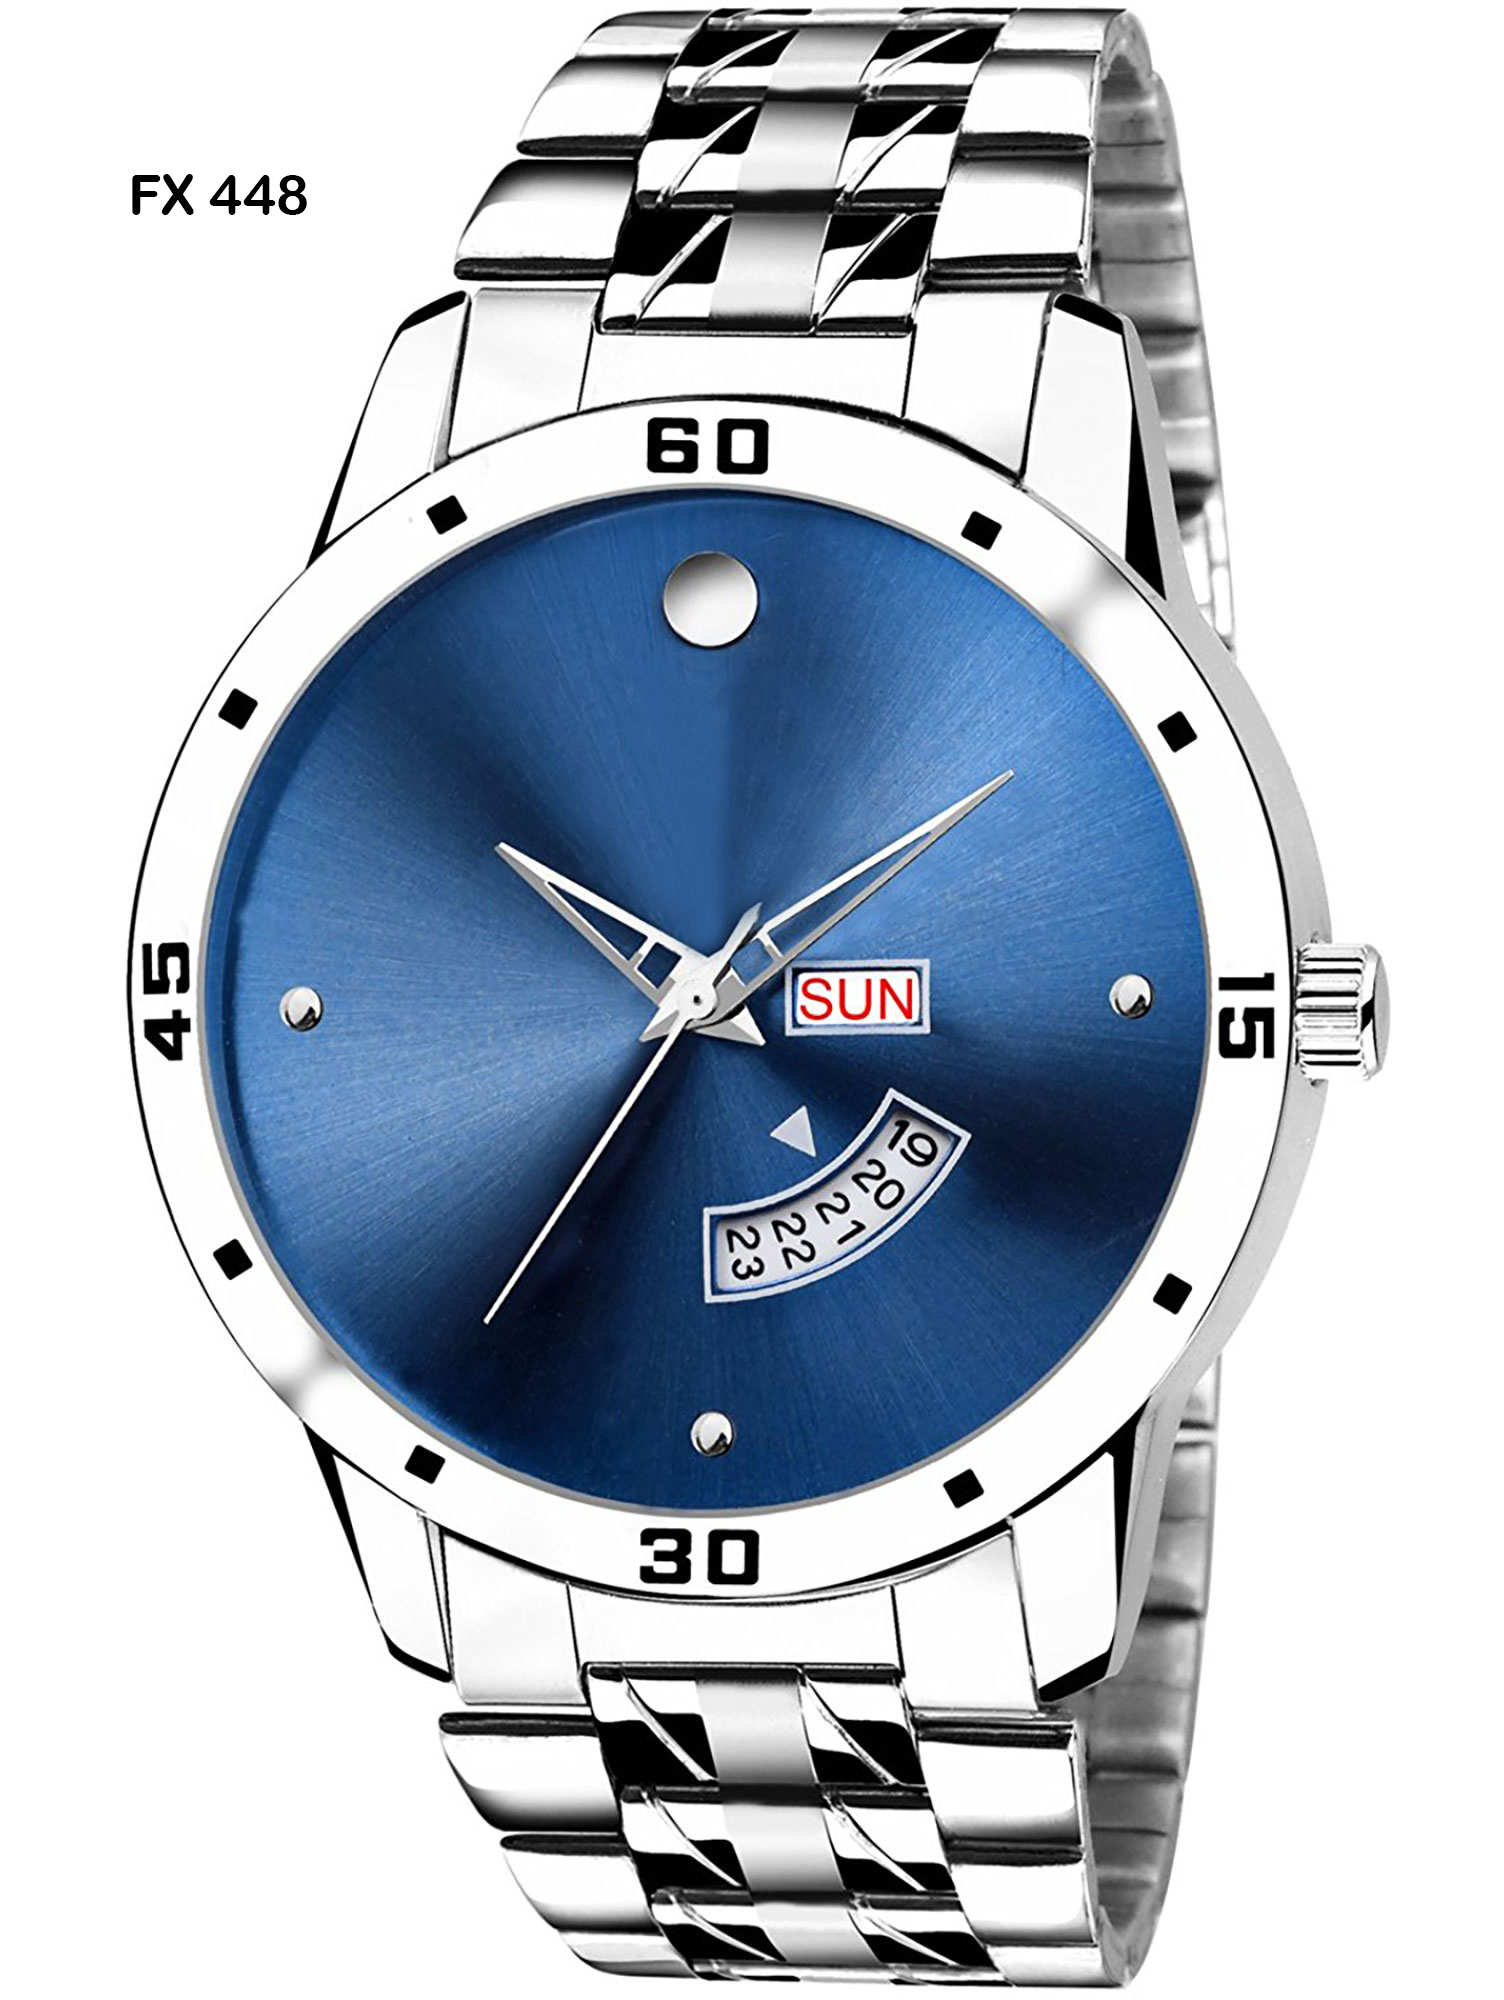 FX448 Silver Body and Blue Dial Mens Watch